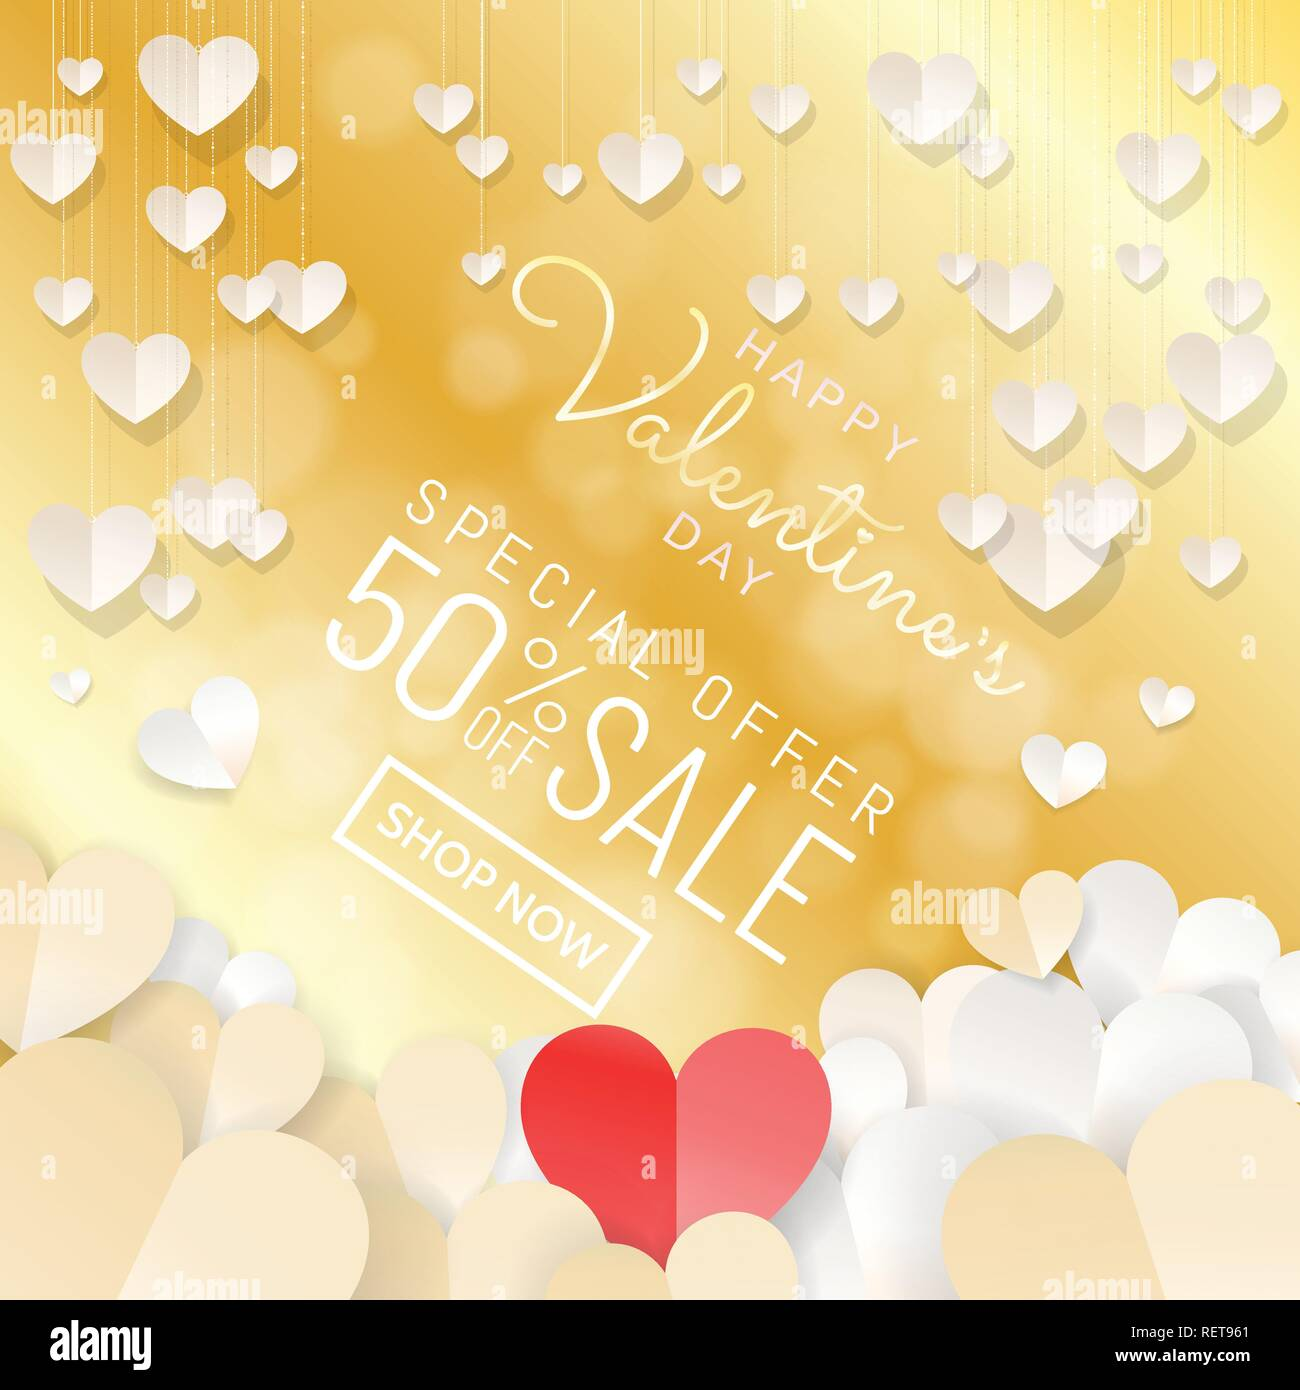 Happy Valentine's Day sale background banner with paper cut style decoration of hanging hearts and red paper heart at center design for web banner, sa - Stock Vector